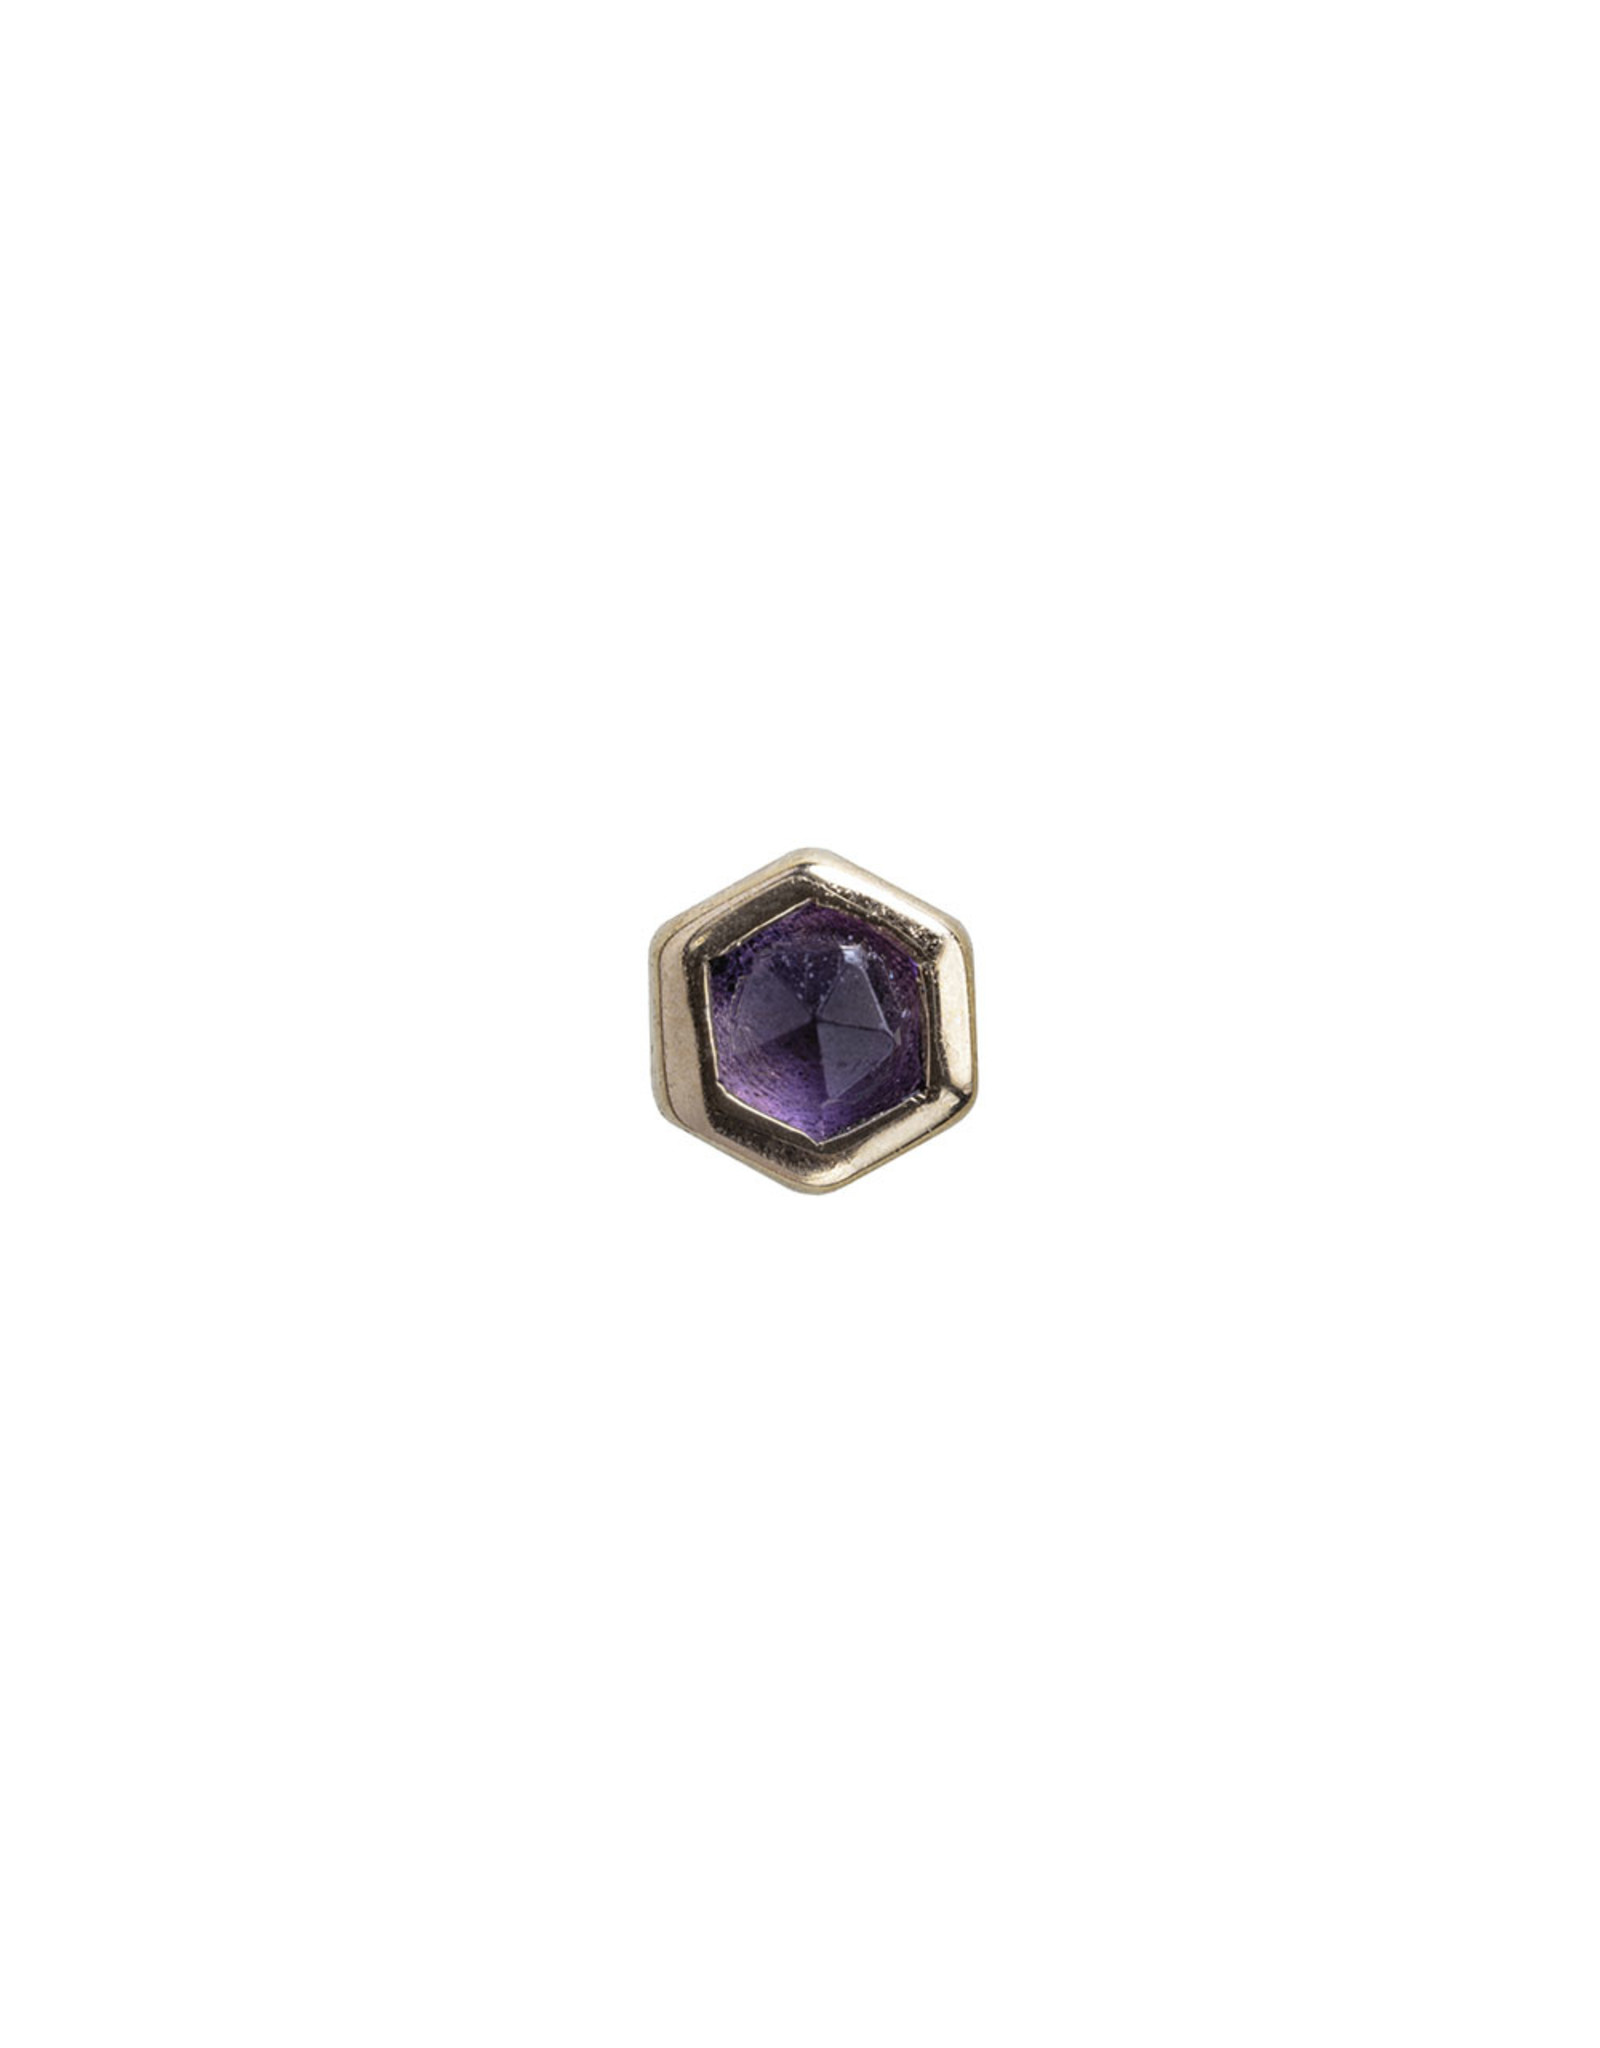 BVLA BVLA rose gold honeycomb press fit end with 2.0 rose cut AA Amethyst